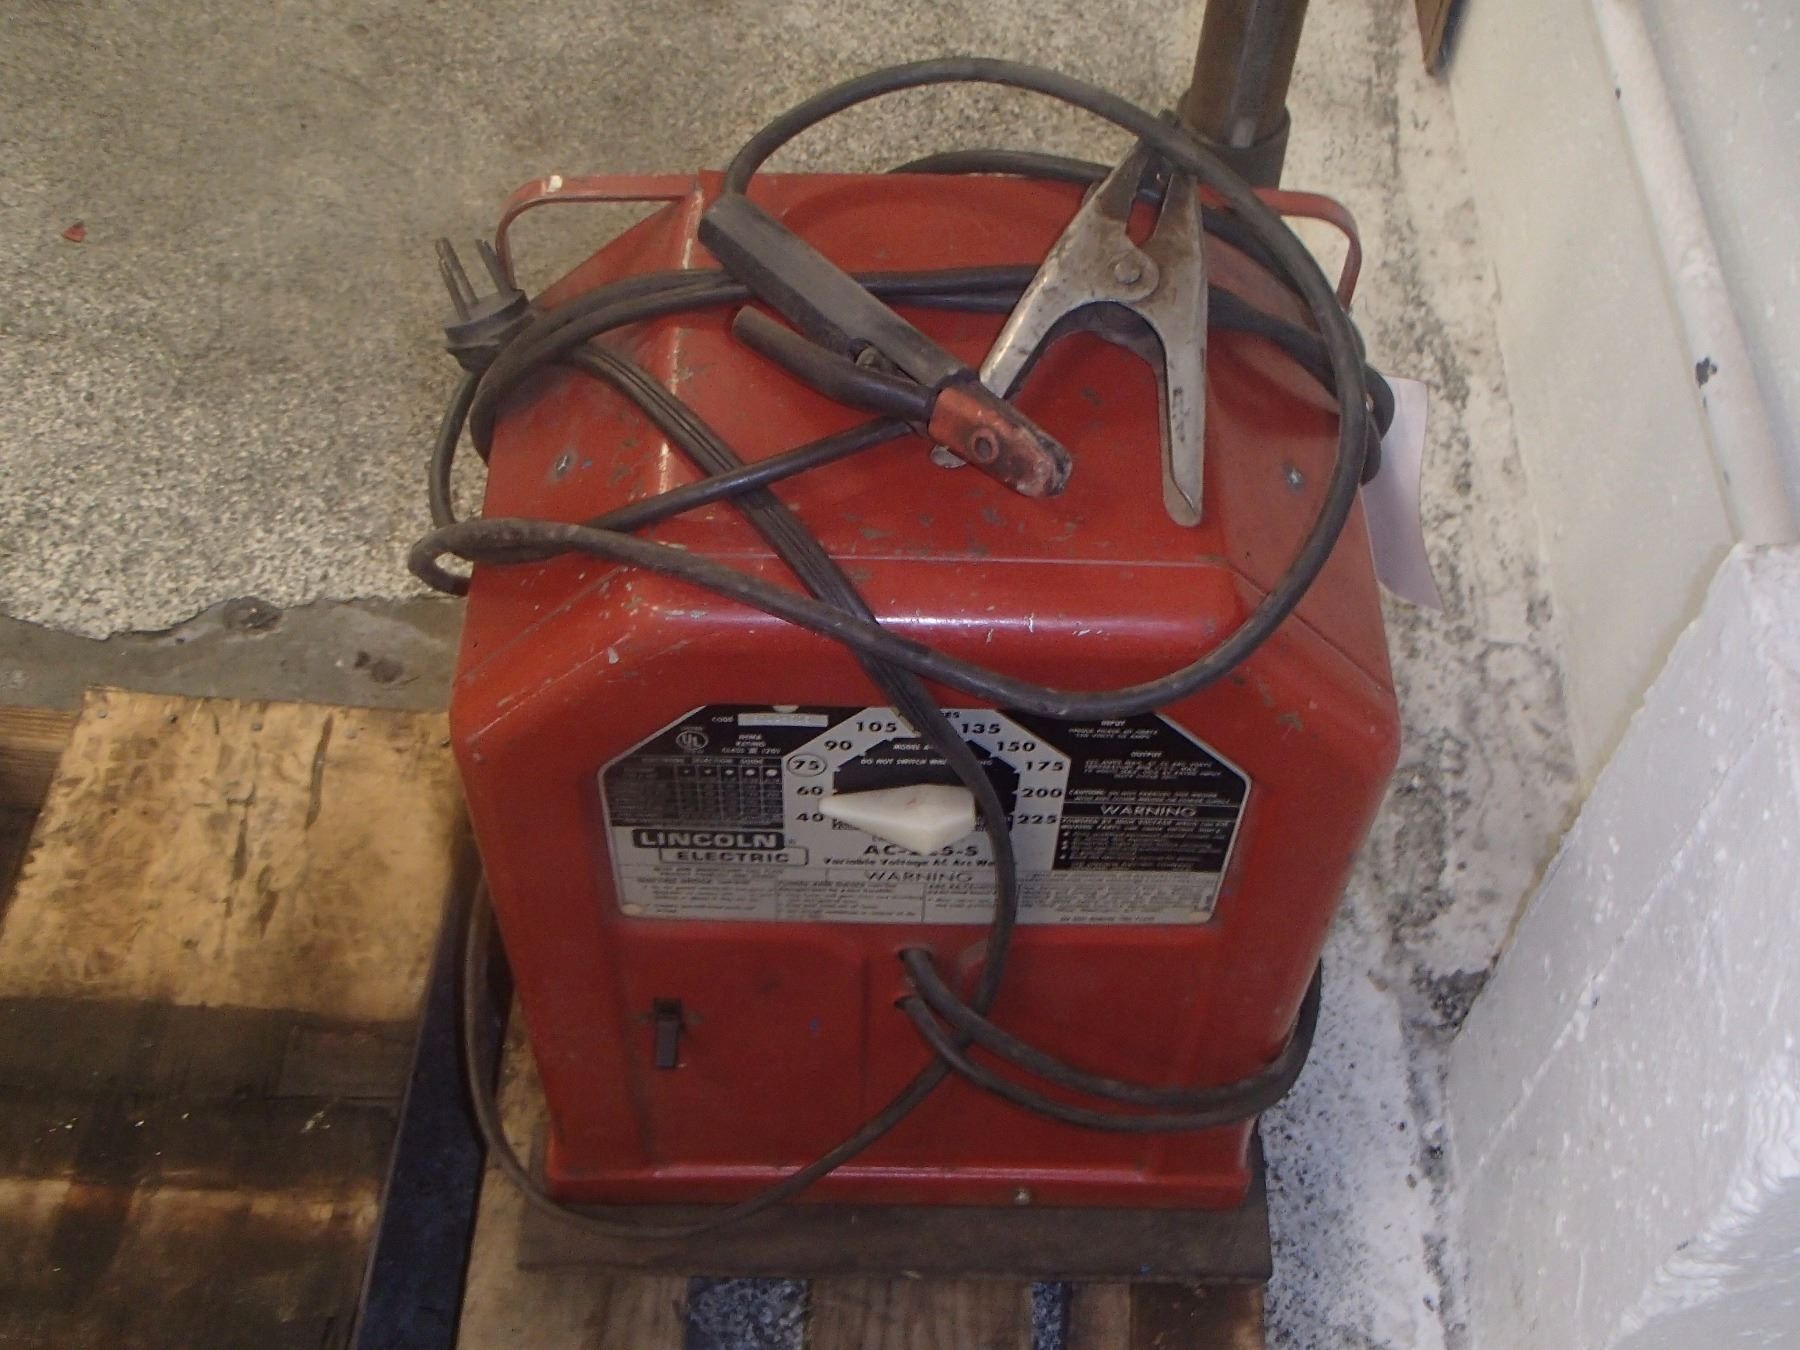 image 2 lincoln electric ac 225 s variable voltage ac arc welder  [ 1800 x 1350 Pixel ]